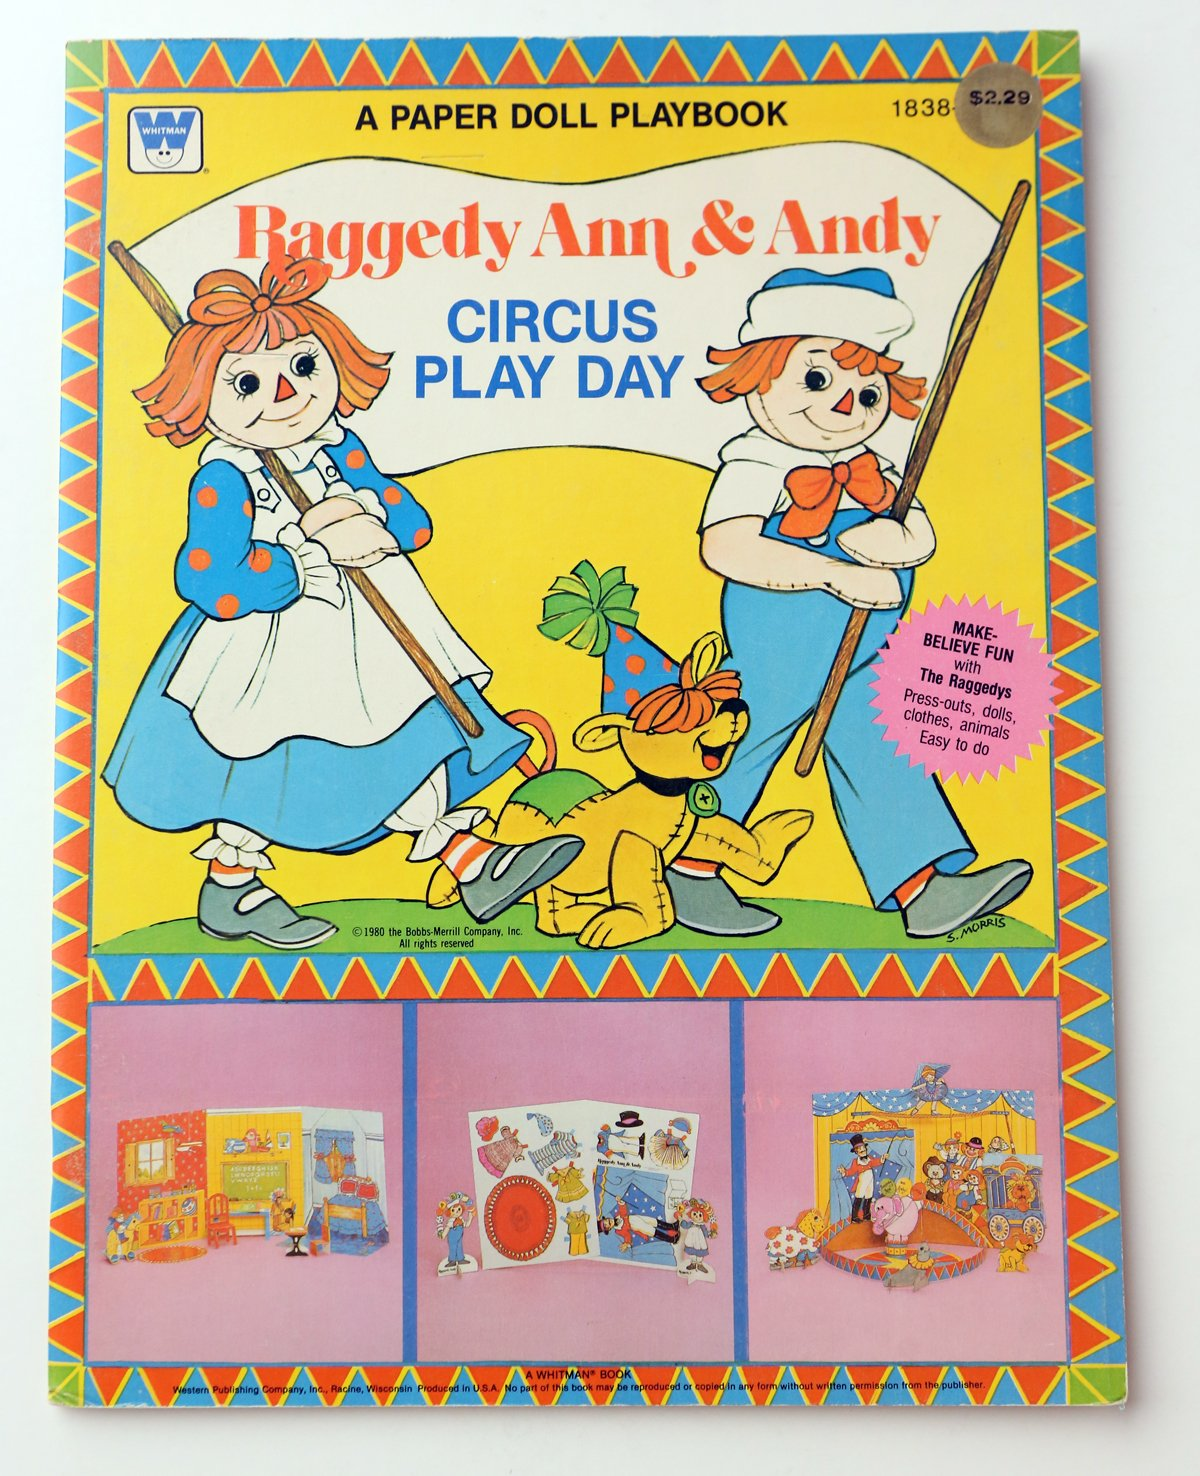 RAGGEDY ANN & ANDY CIRCUS PLAY DAY Playbook PAPER DOLLS Play Book (UNCUT) w Press Out DOLLS, Clothes & ANIMALS (1980)